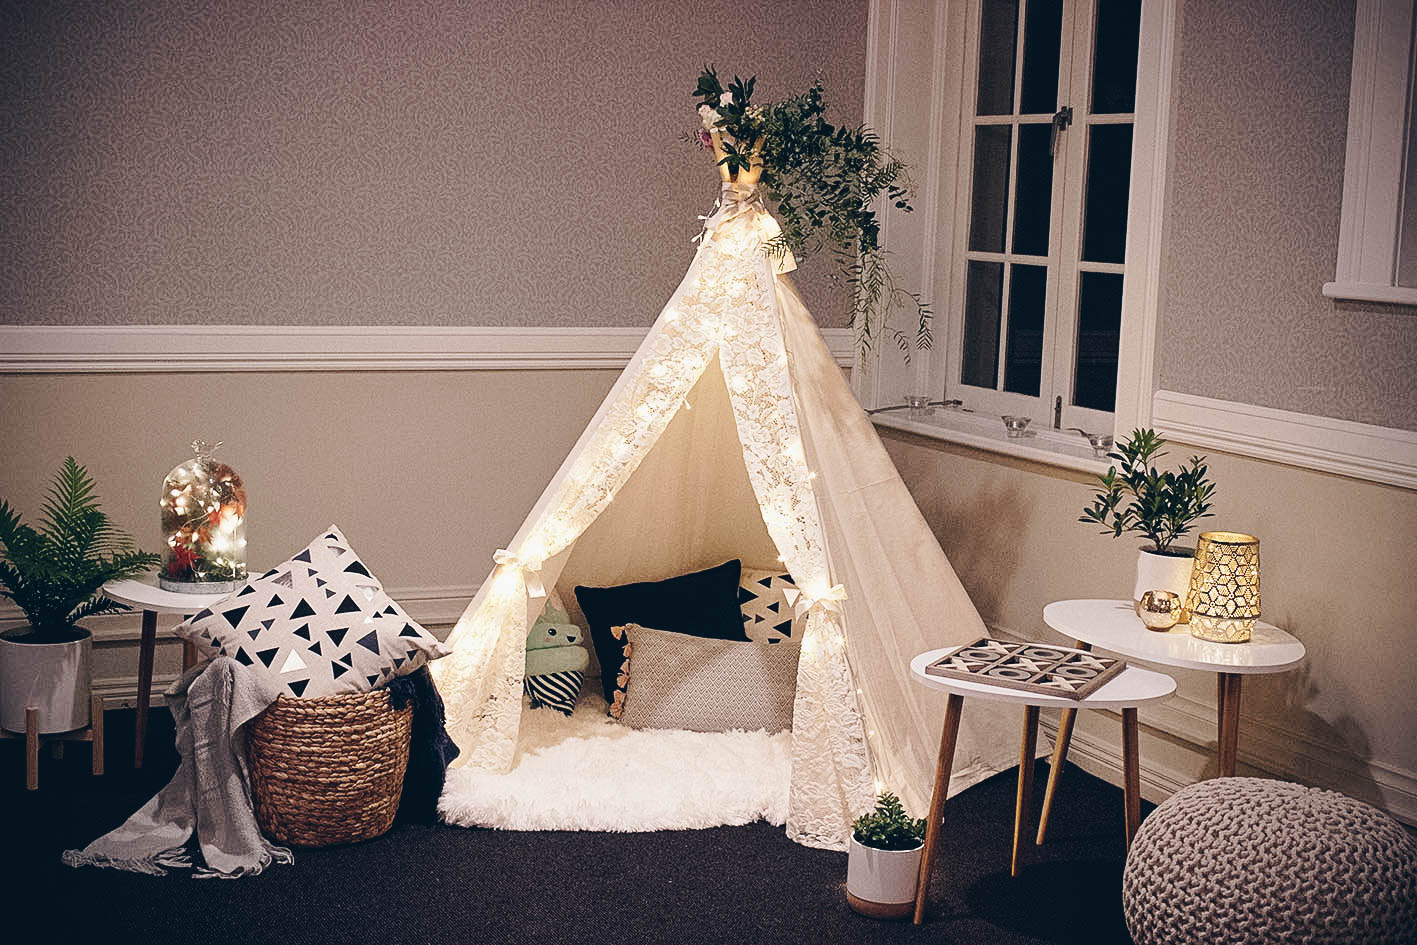 sydney-event-oatlands-house-teepee-styling.jpg